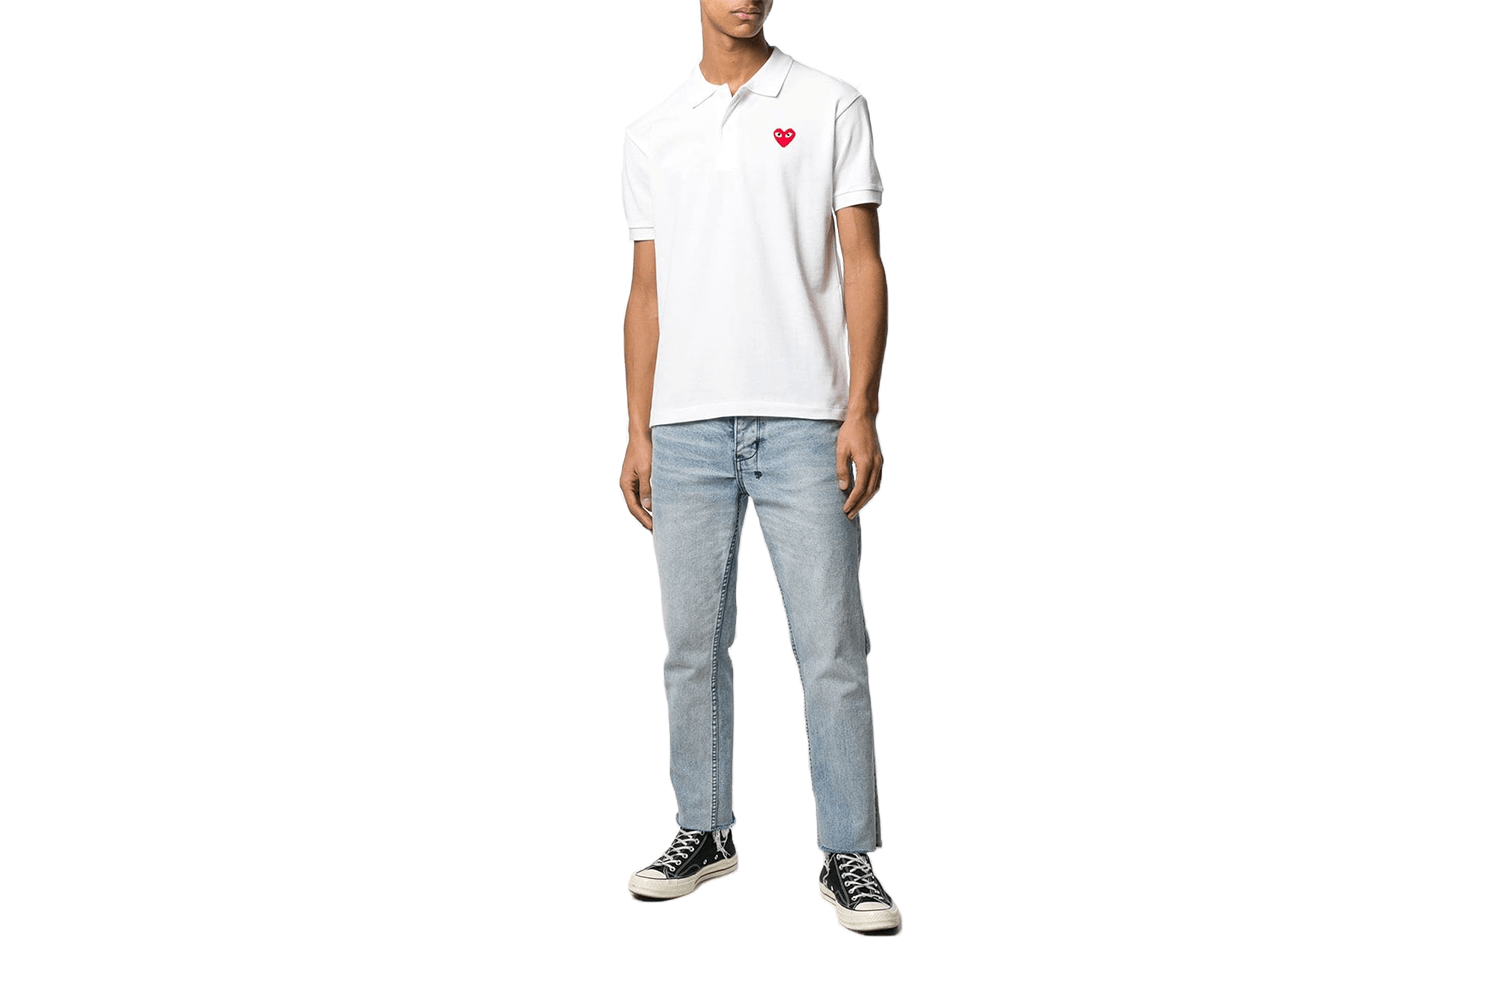 SMALL RED HEART WHITE POLO - AZT006 MENS SOFTGOODS COMME DES GARCONS